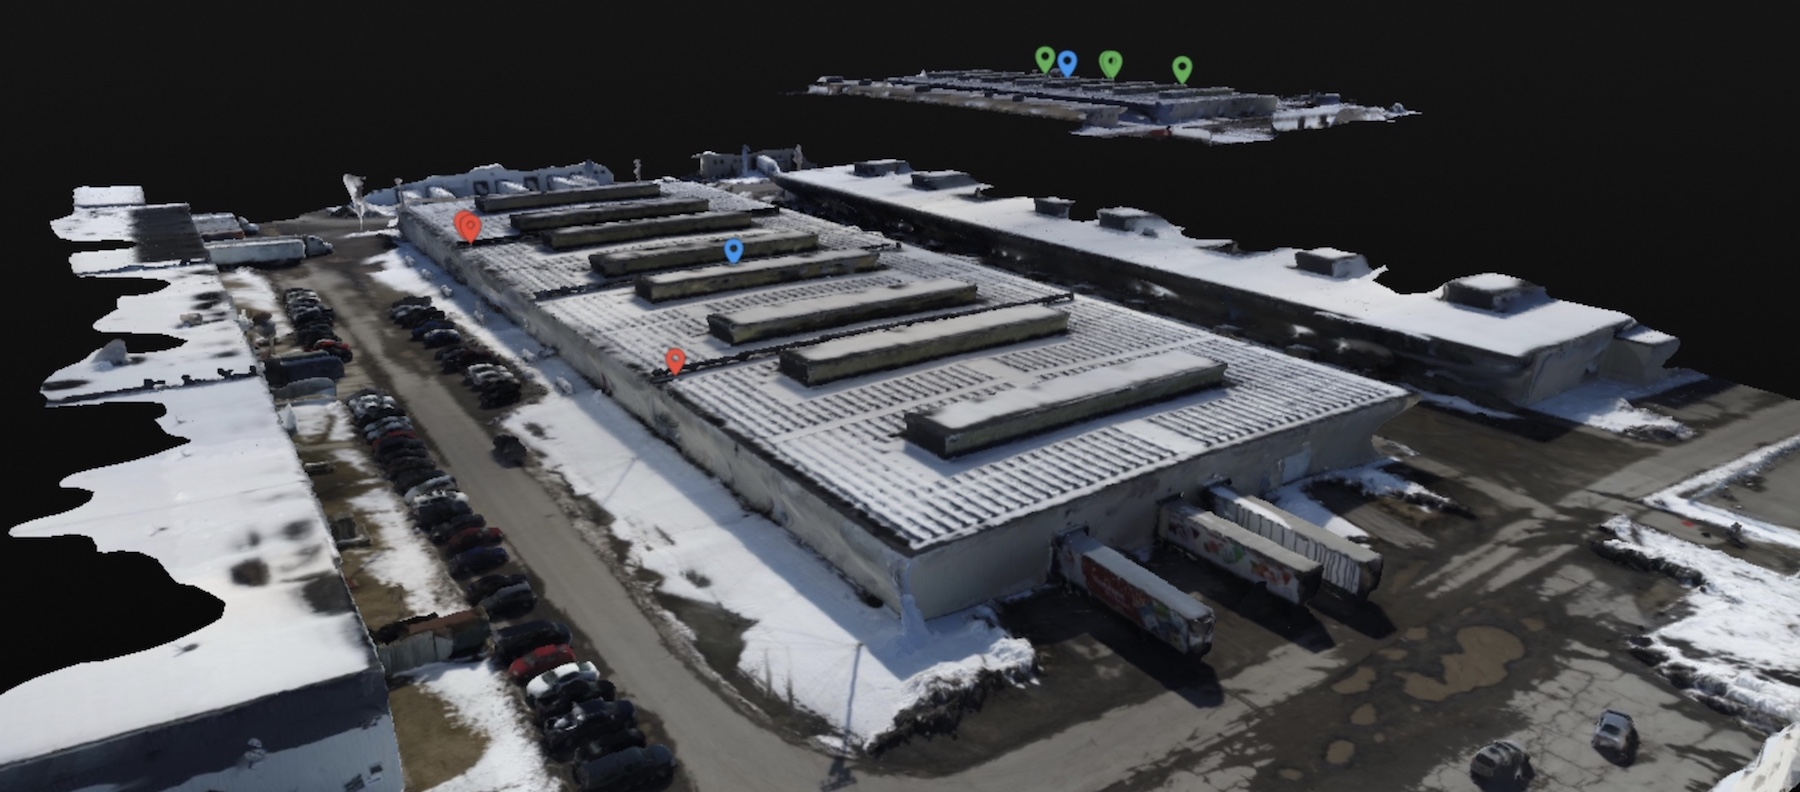 3D model, solar panels, construction, inspections, drones